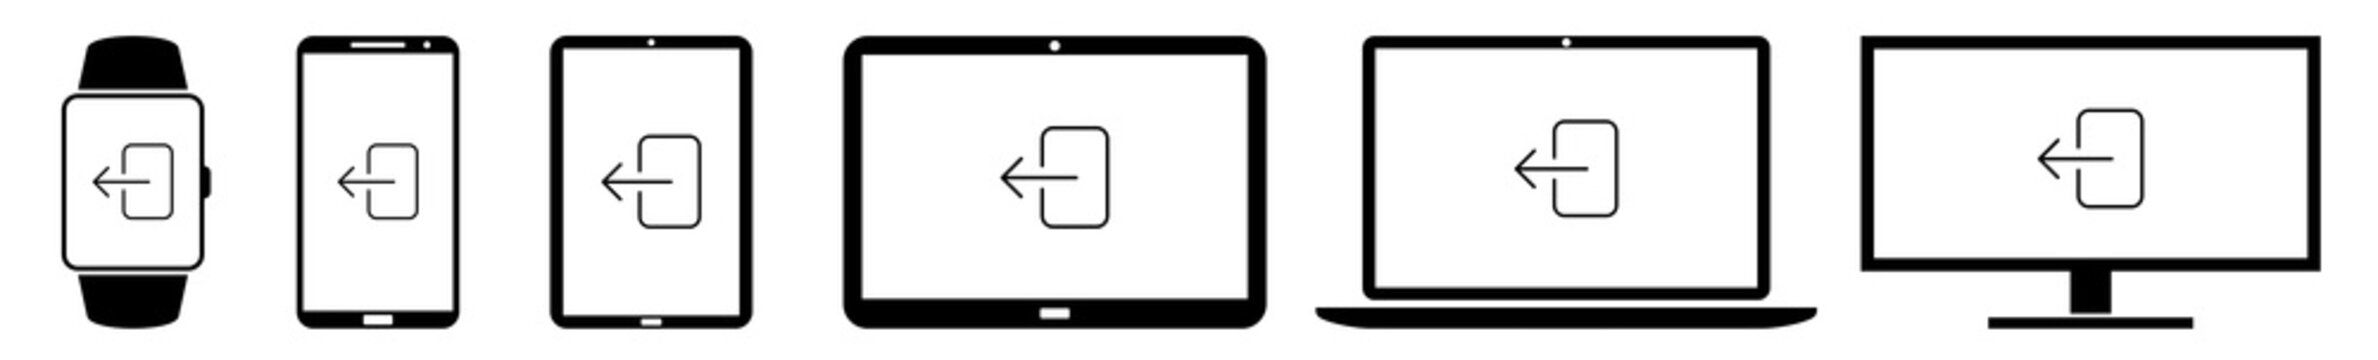 Display logout, log, out, exit, access, entrance Icon Devices Set | Web Screen Device Online | Laptop Vector Illustration | Mobile Phone | PC Computer Smartphone Tablet Sign Isolated